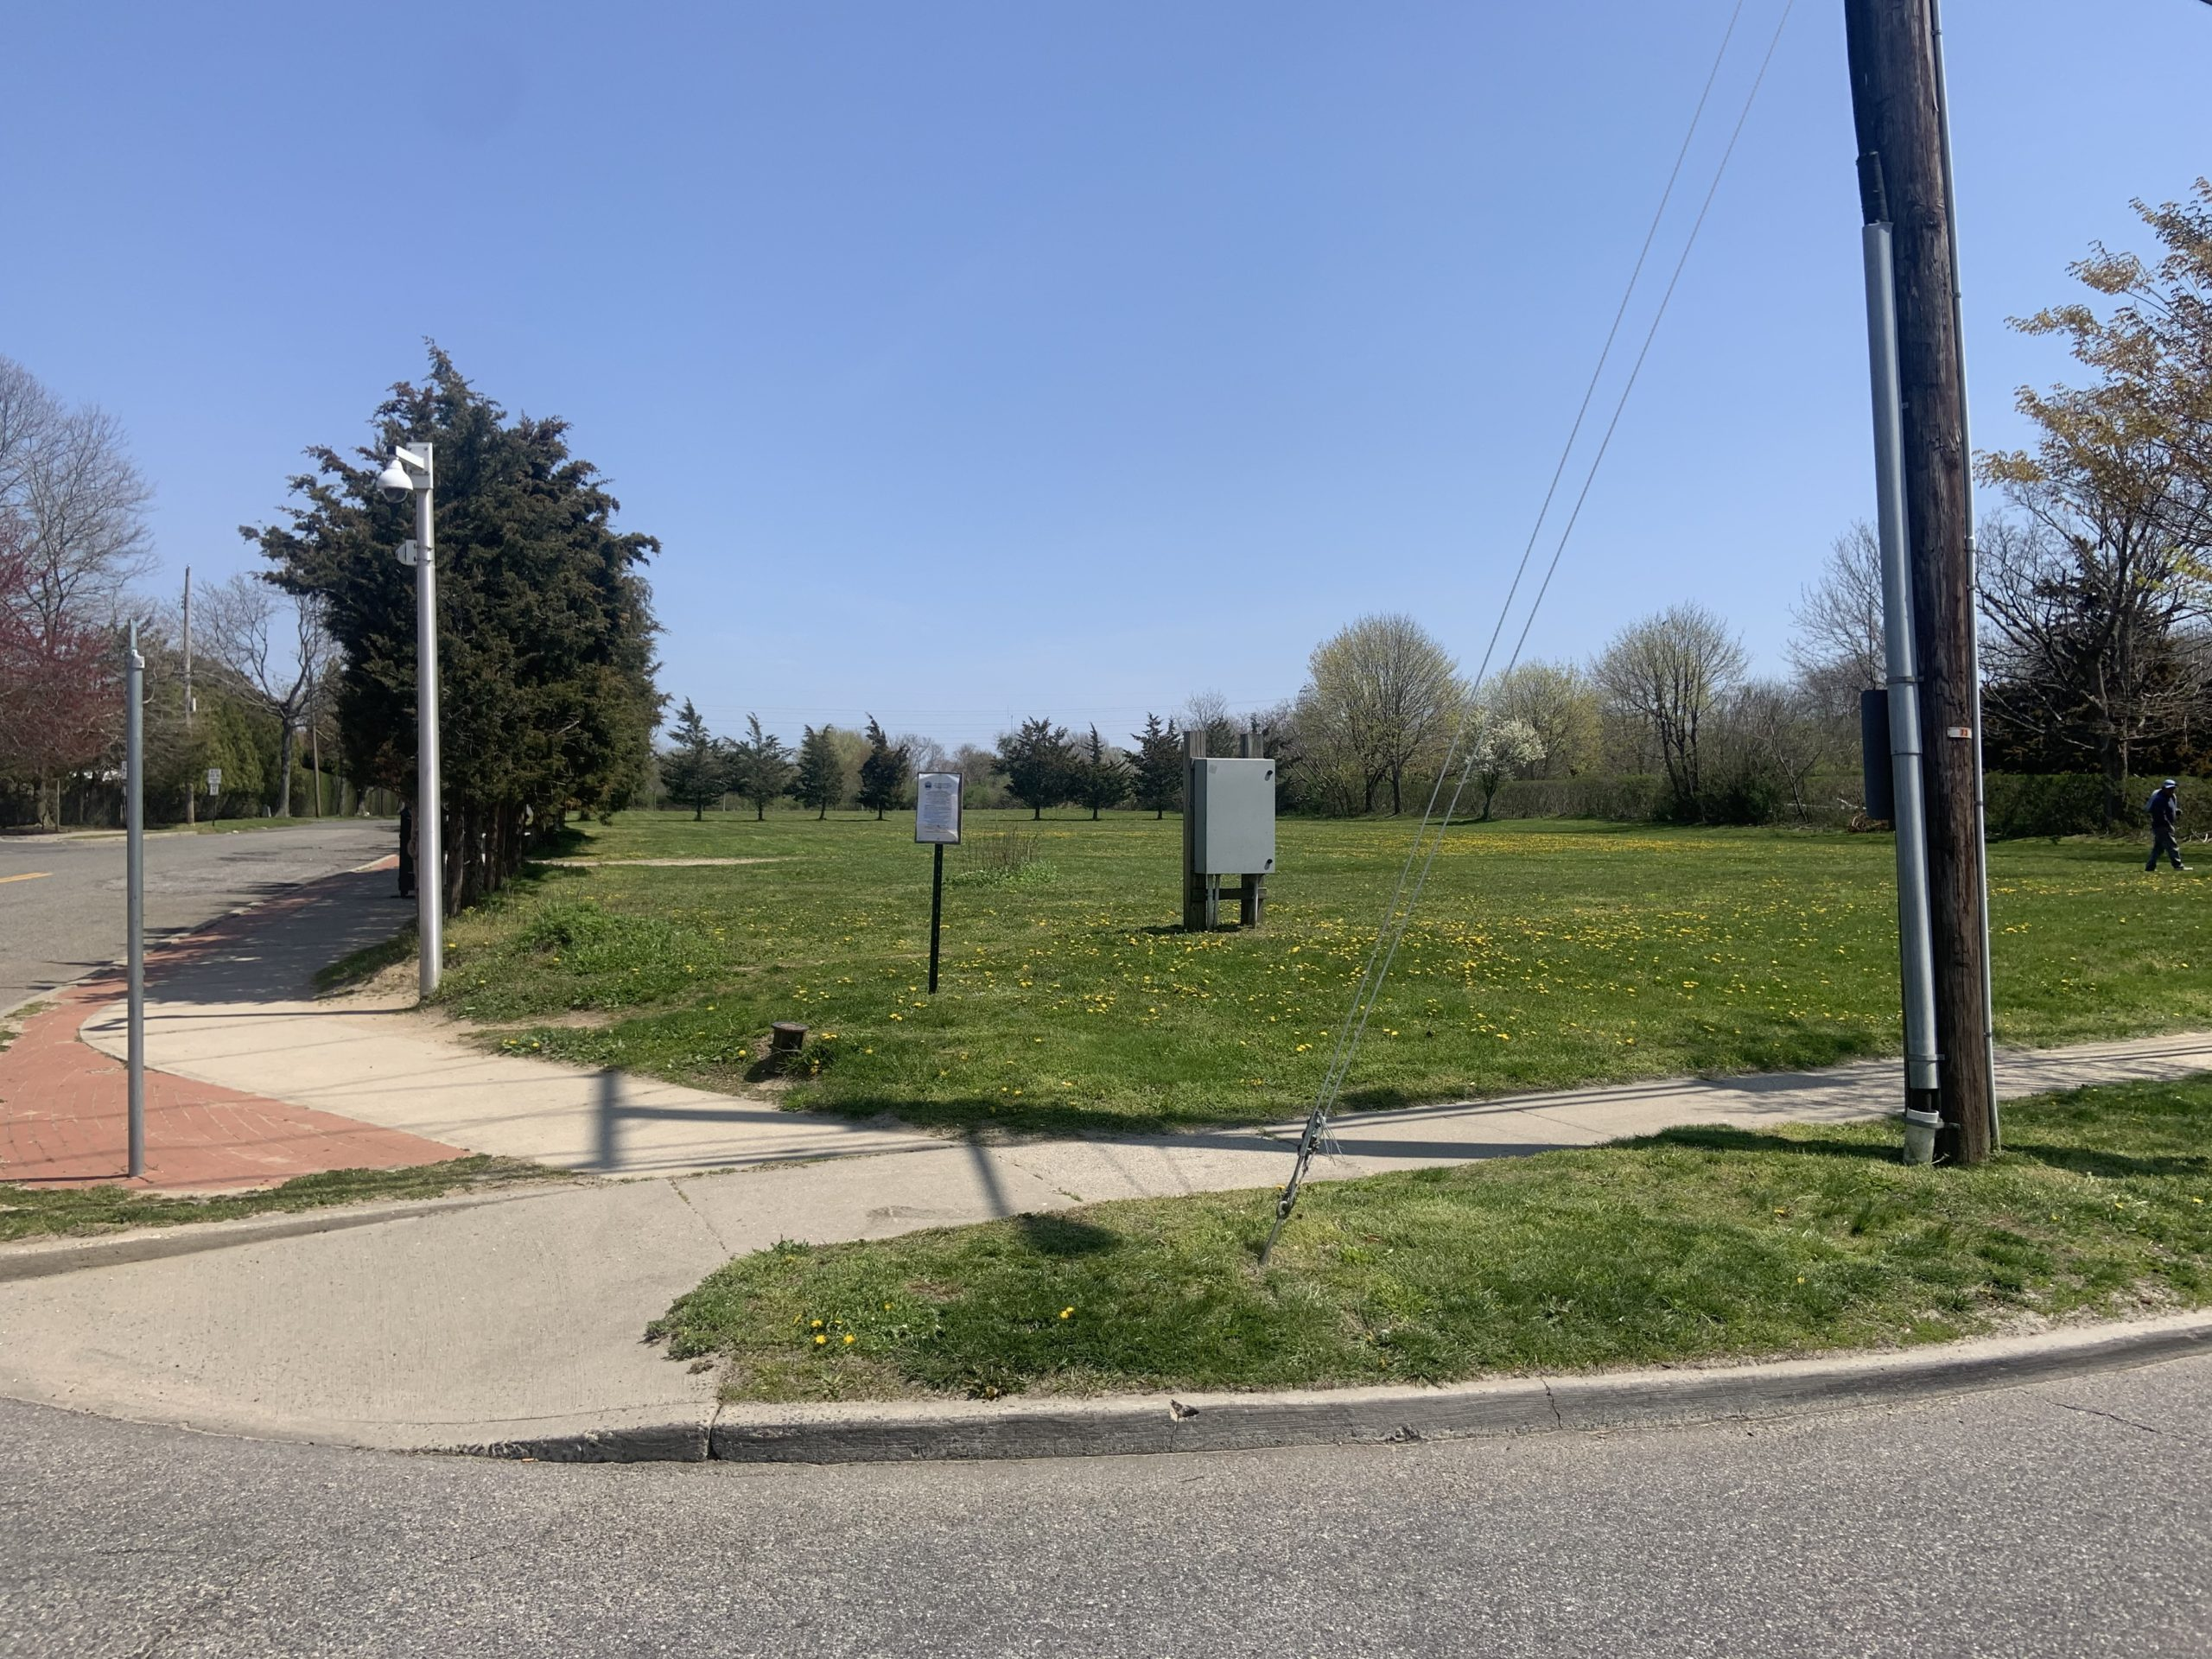 Southampton Village wants to plant some low-lying perennials at the corner of North Sea Road and Aldrich Lane. STEPHEN J. KOTZ